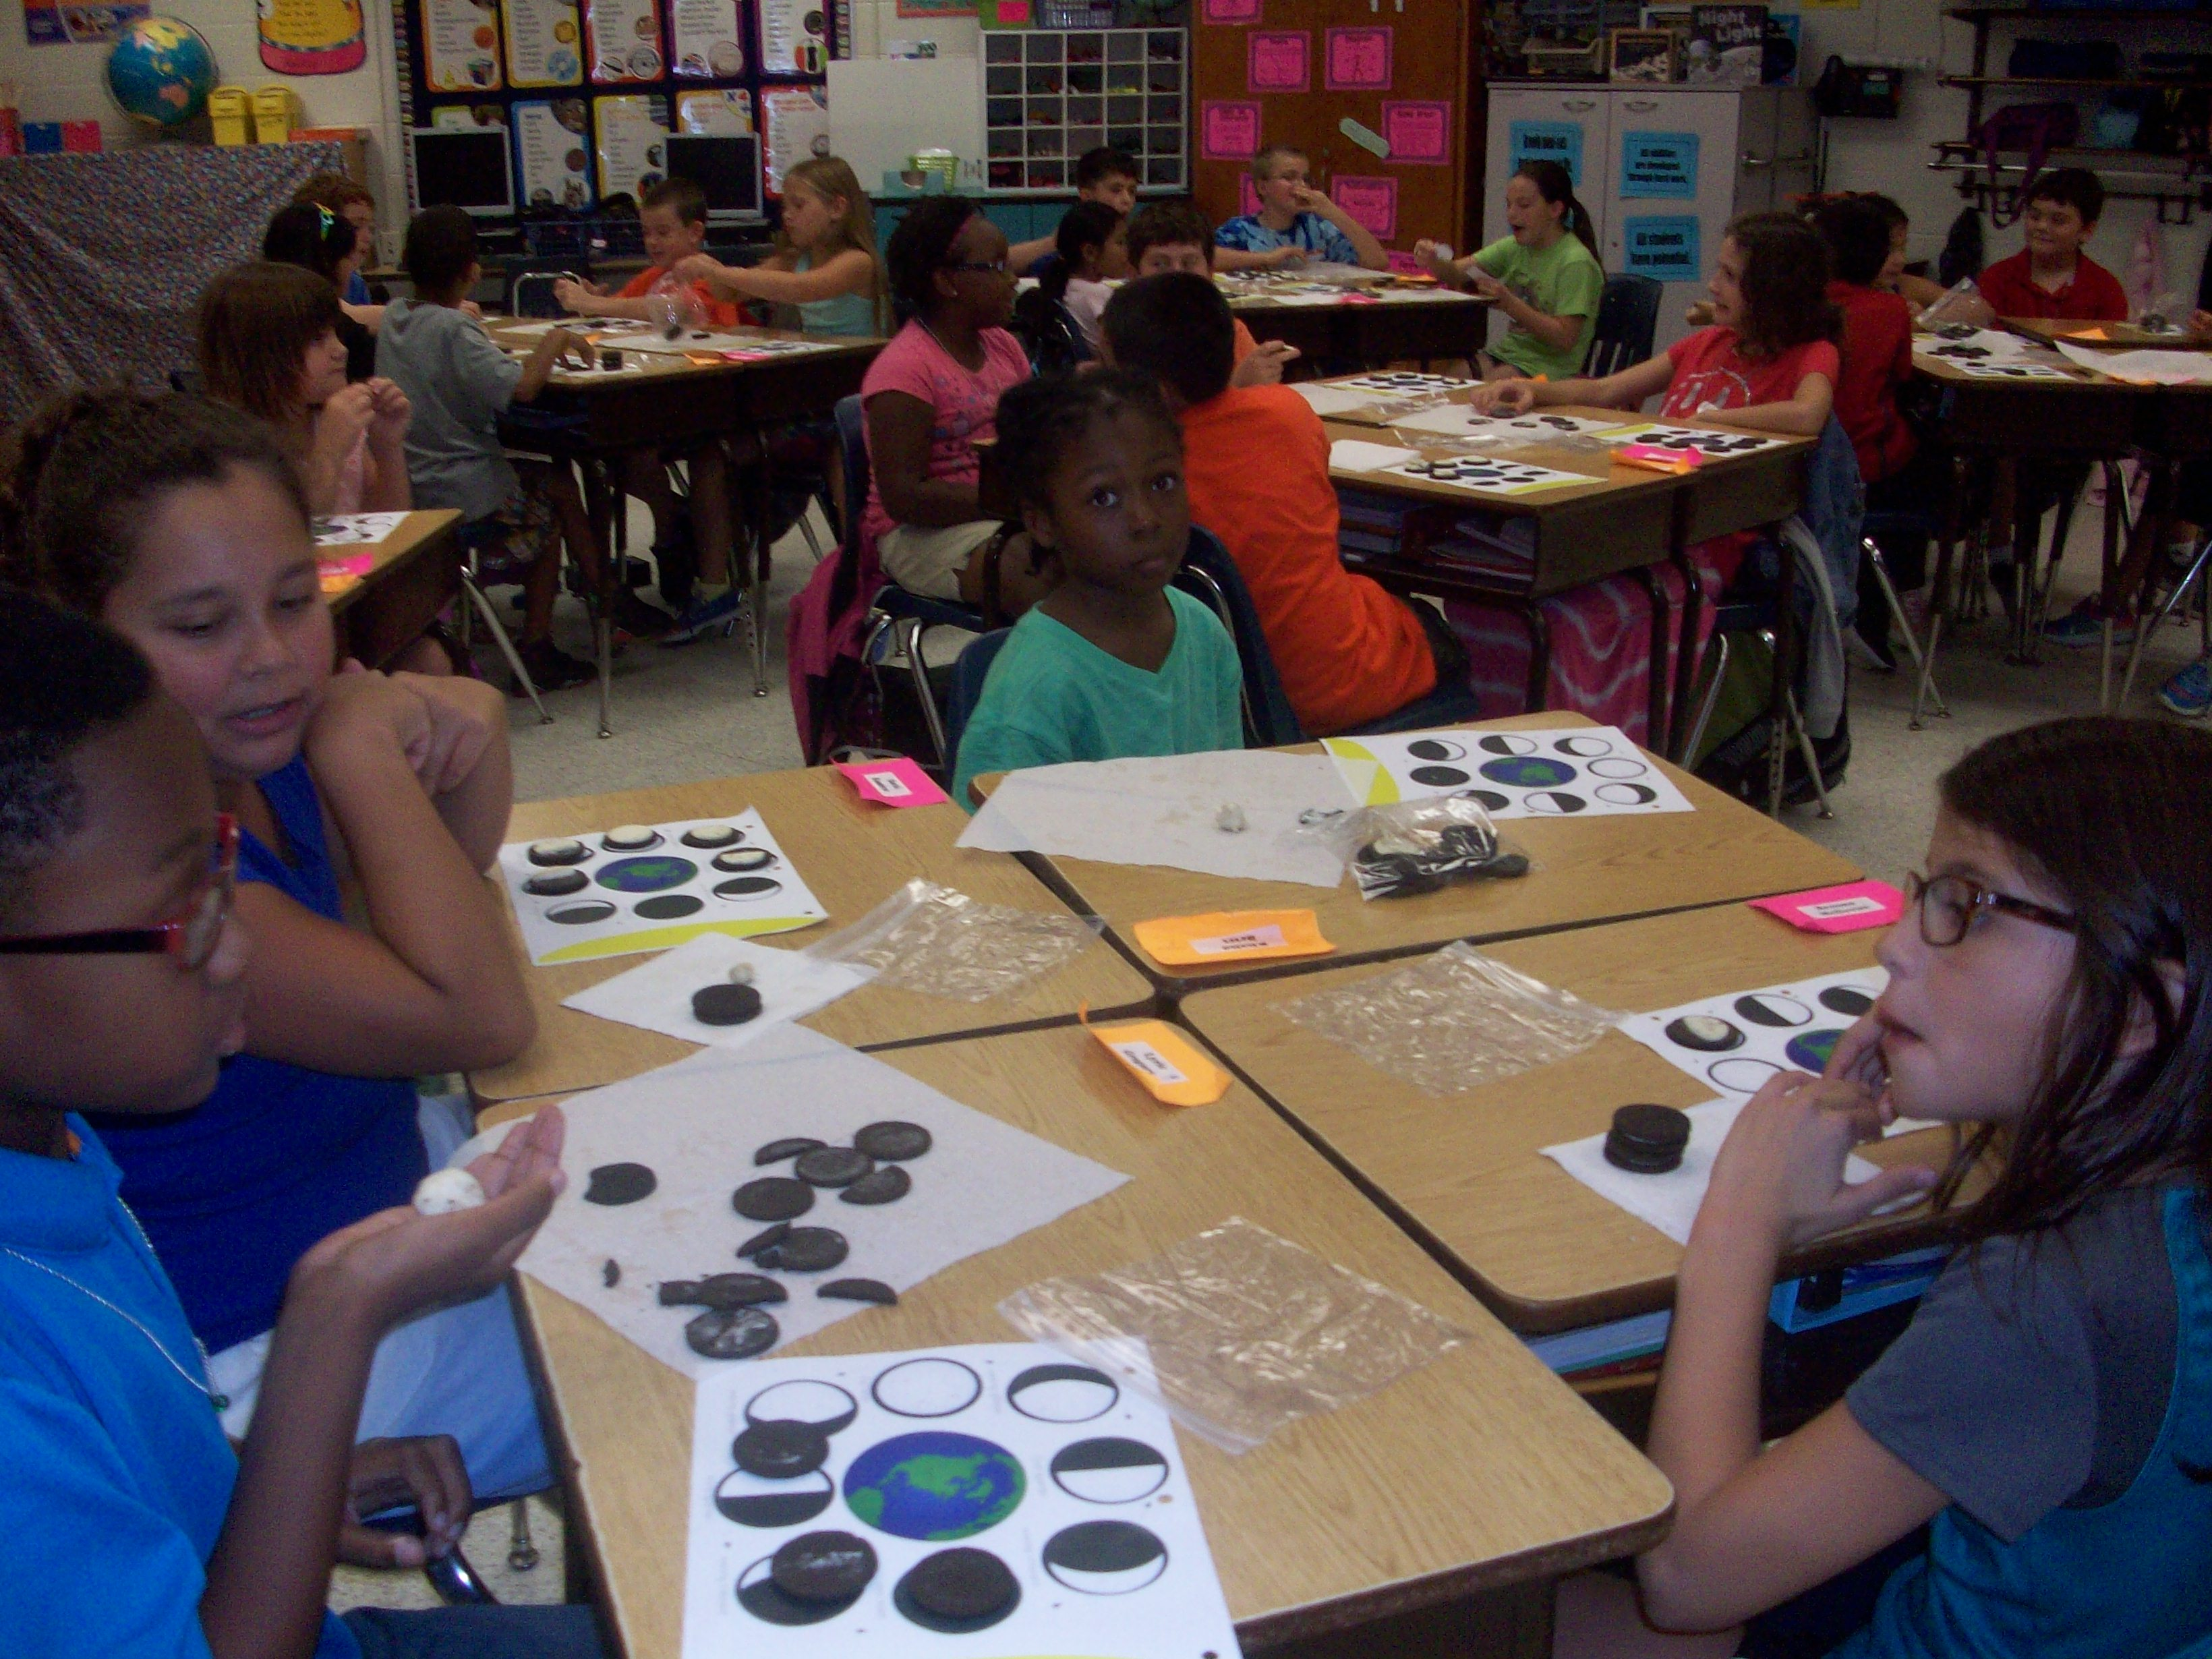 Moon phases with Oreos 027